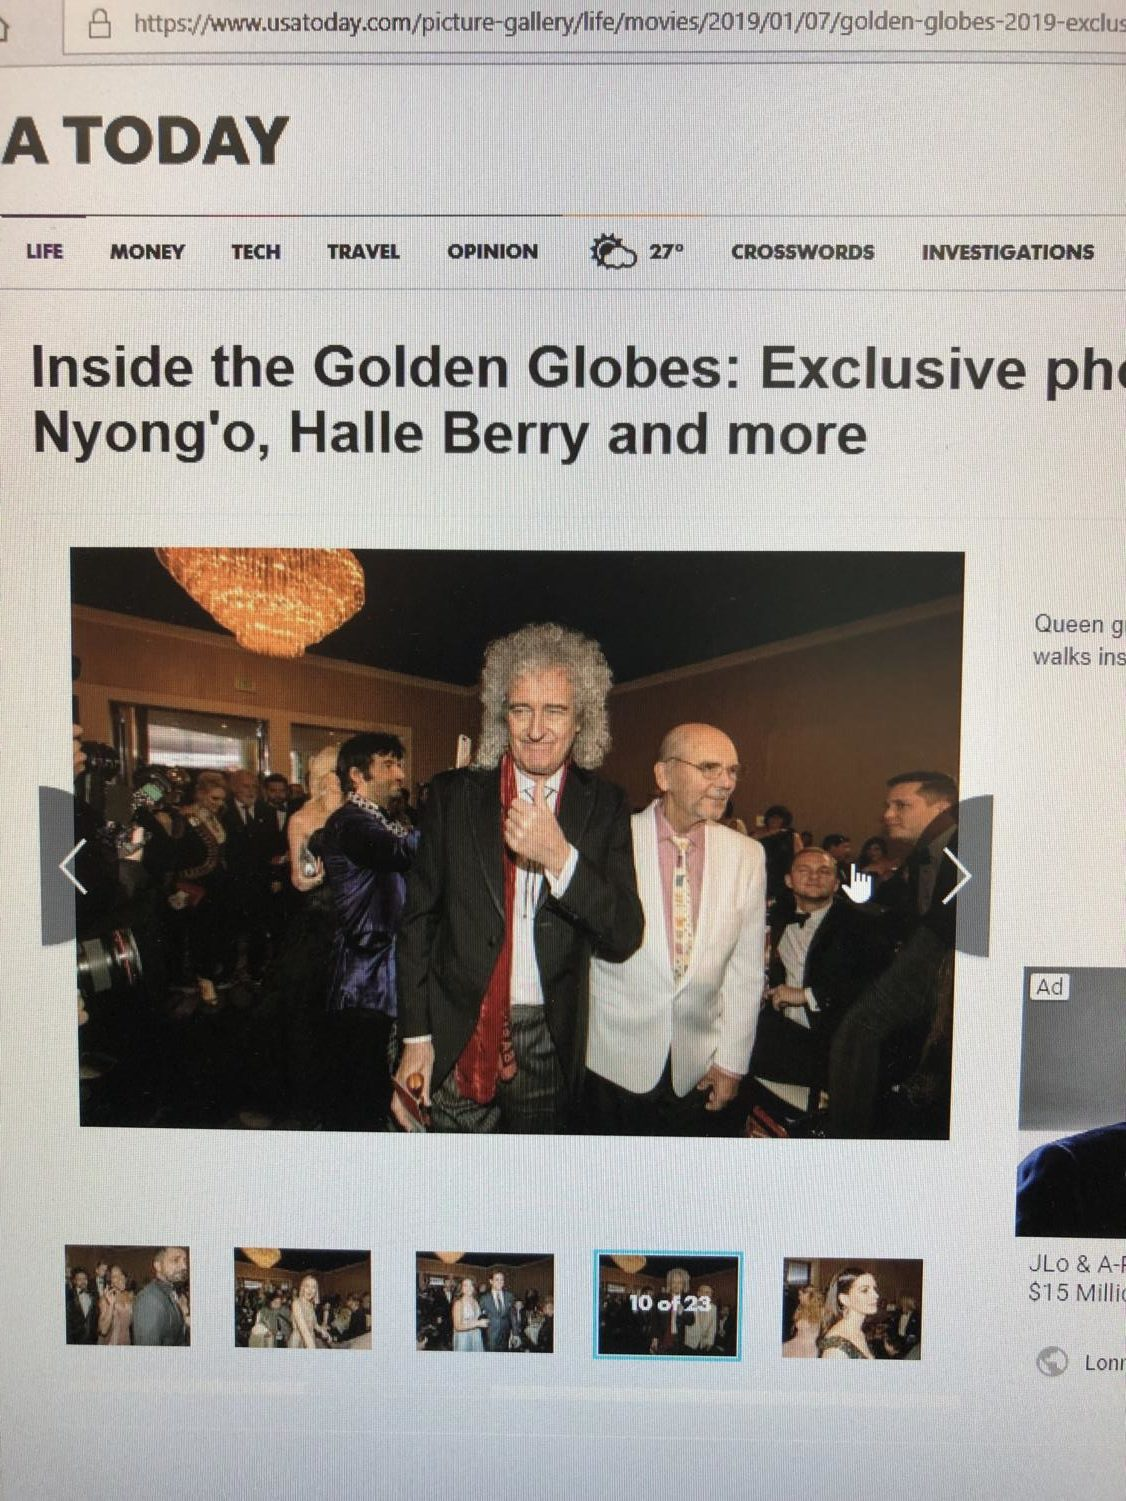 As the actors, actresses, musicians, and directors crowded the after party event, Queen guitarist Brian May gives a thumbs up to the camera and a dashing smile.